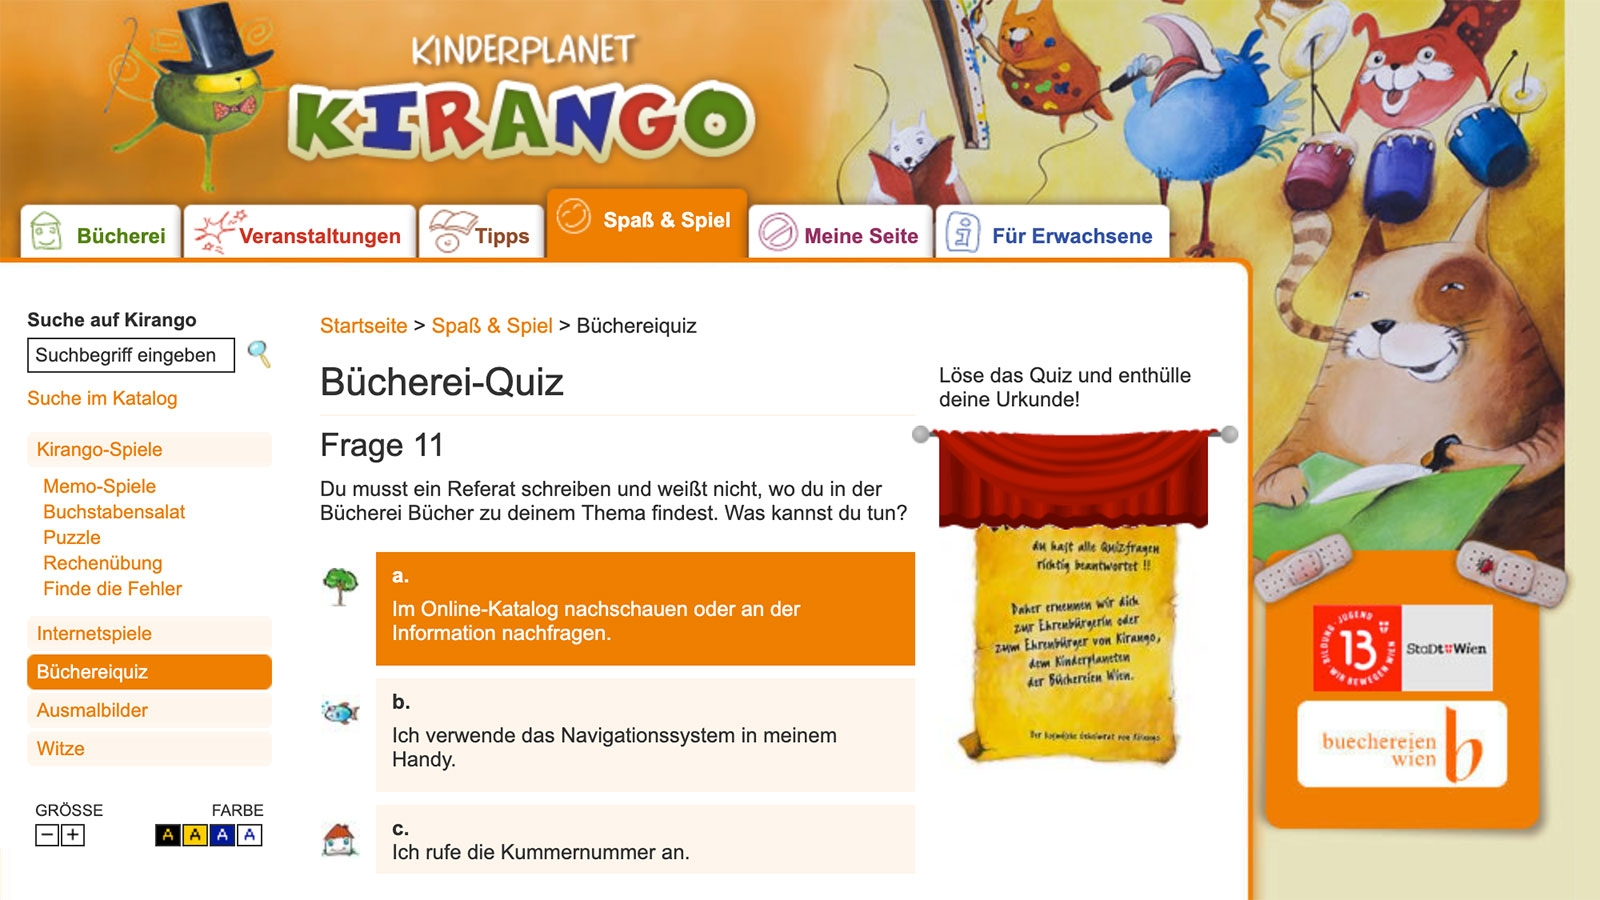 Kirango Kinderplanet | kirango.at | 2009 (Screen Only Quiz 03) © echonet communication